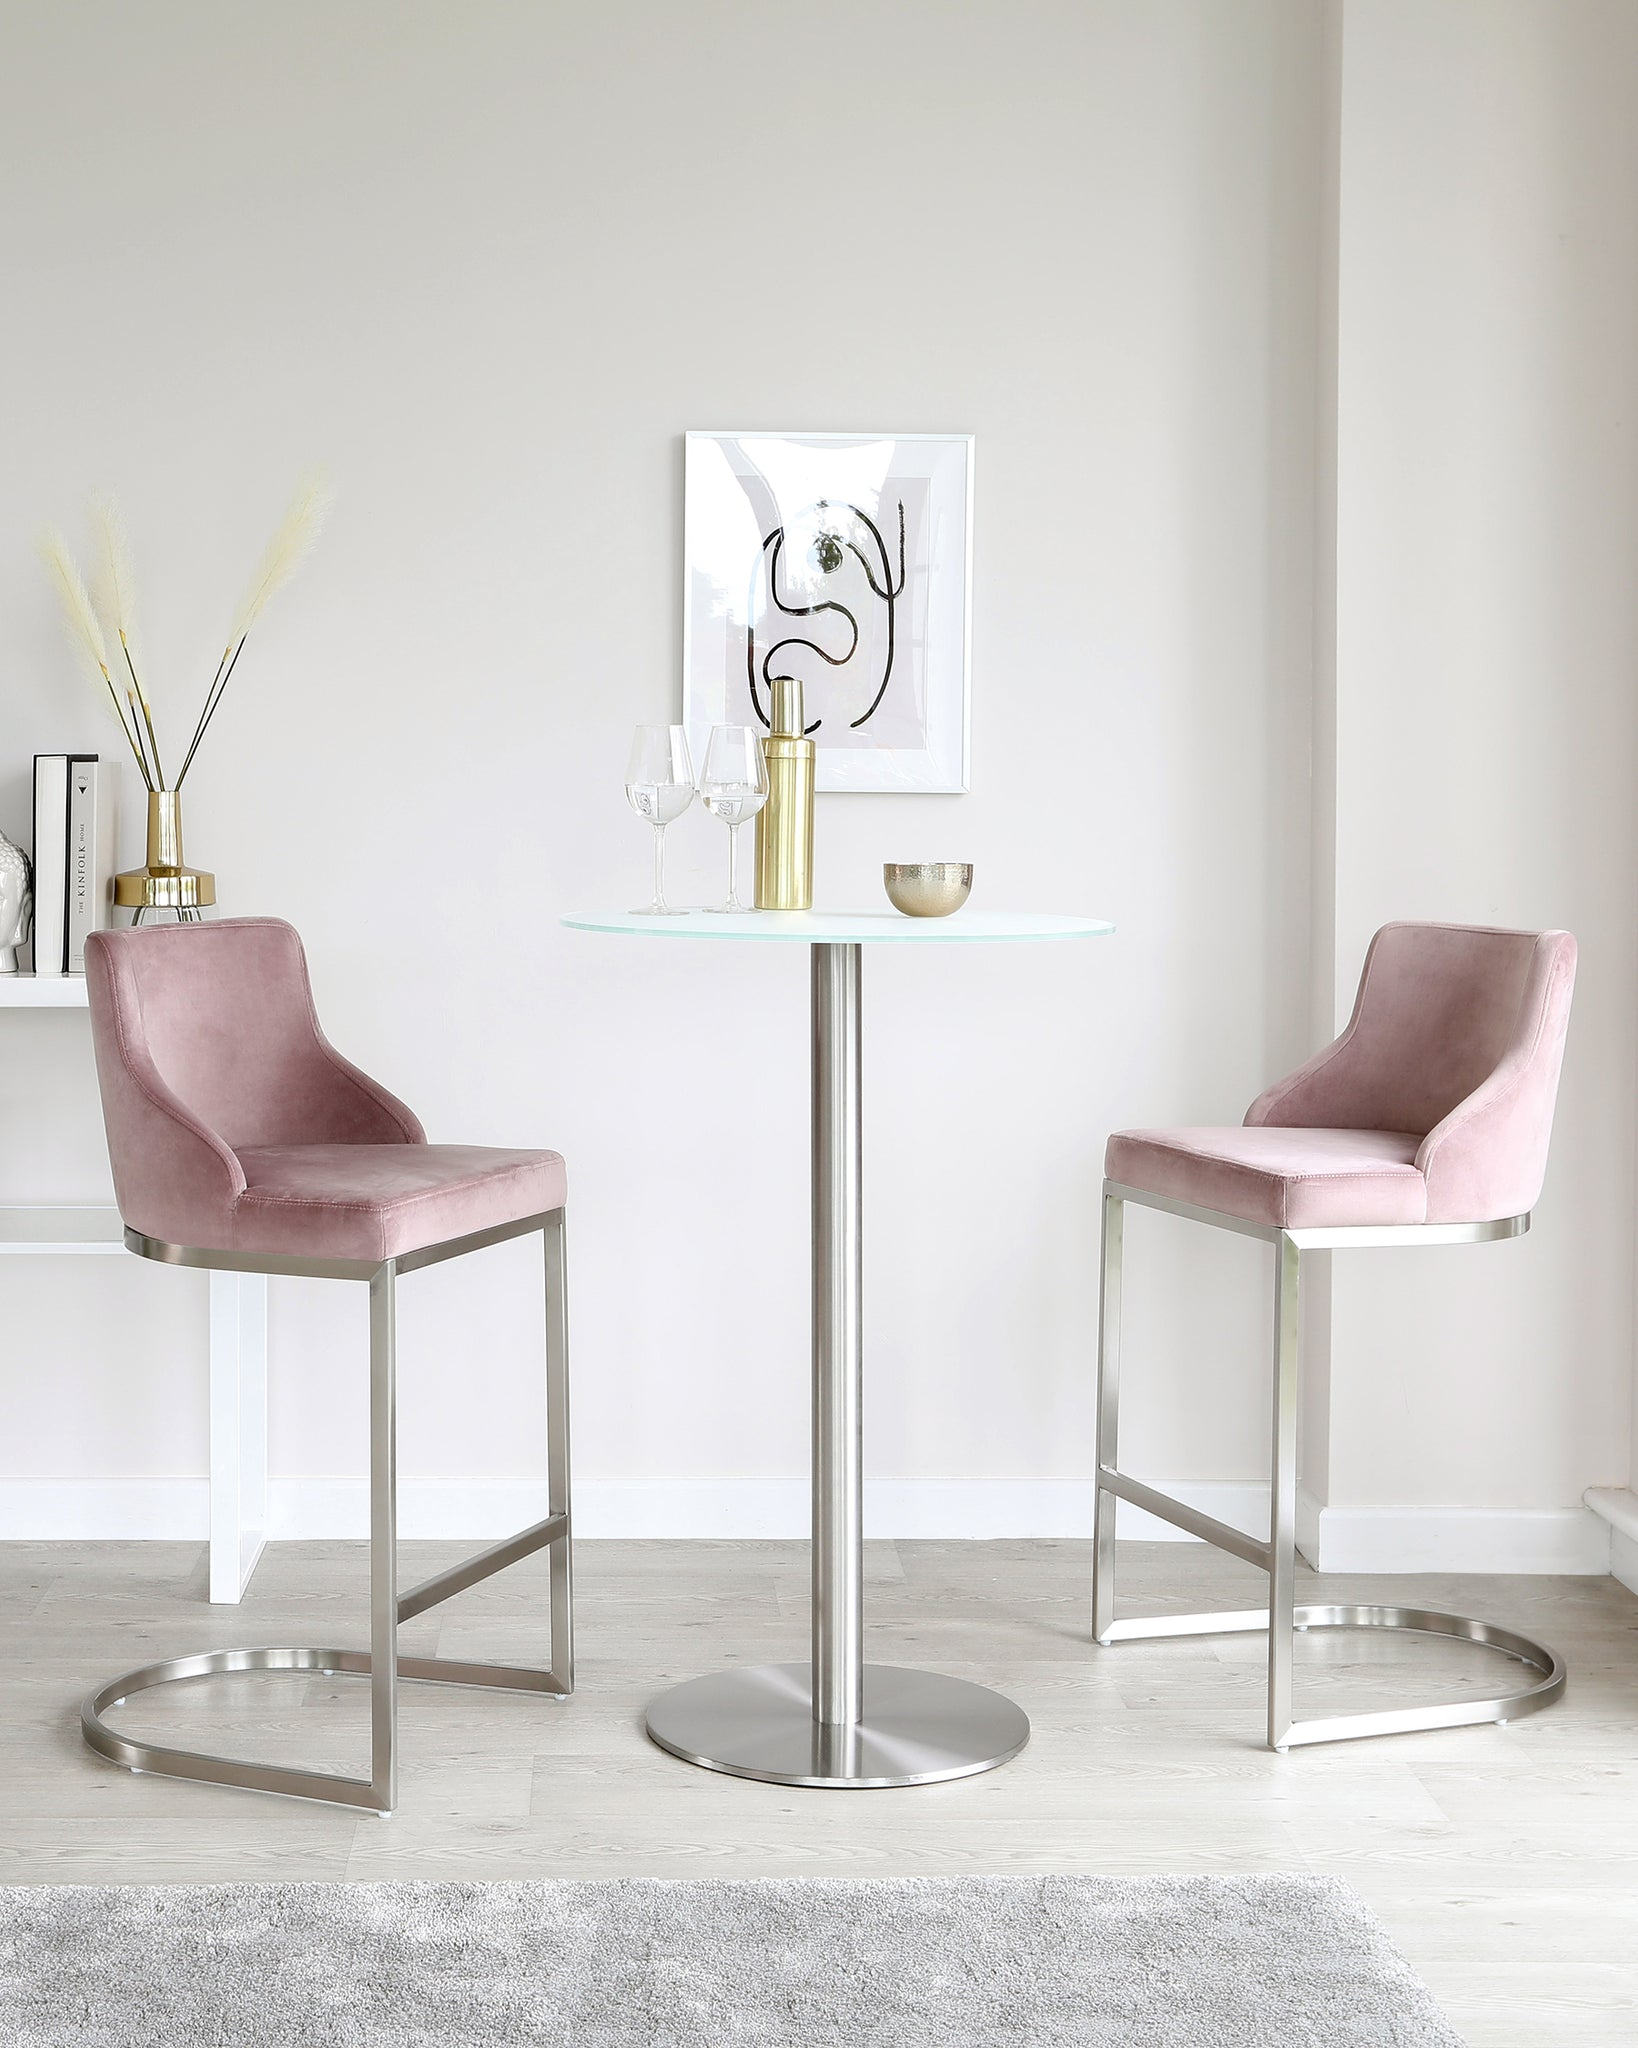 Grande Glass Bar Table Set With Form Blush Pink Stools